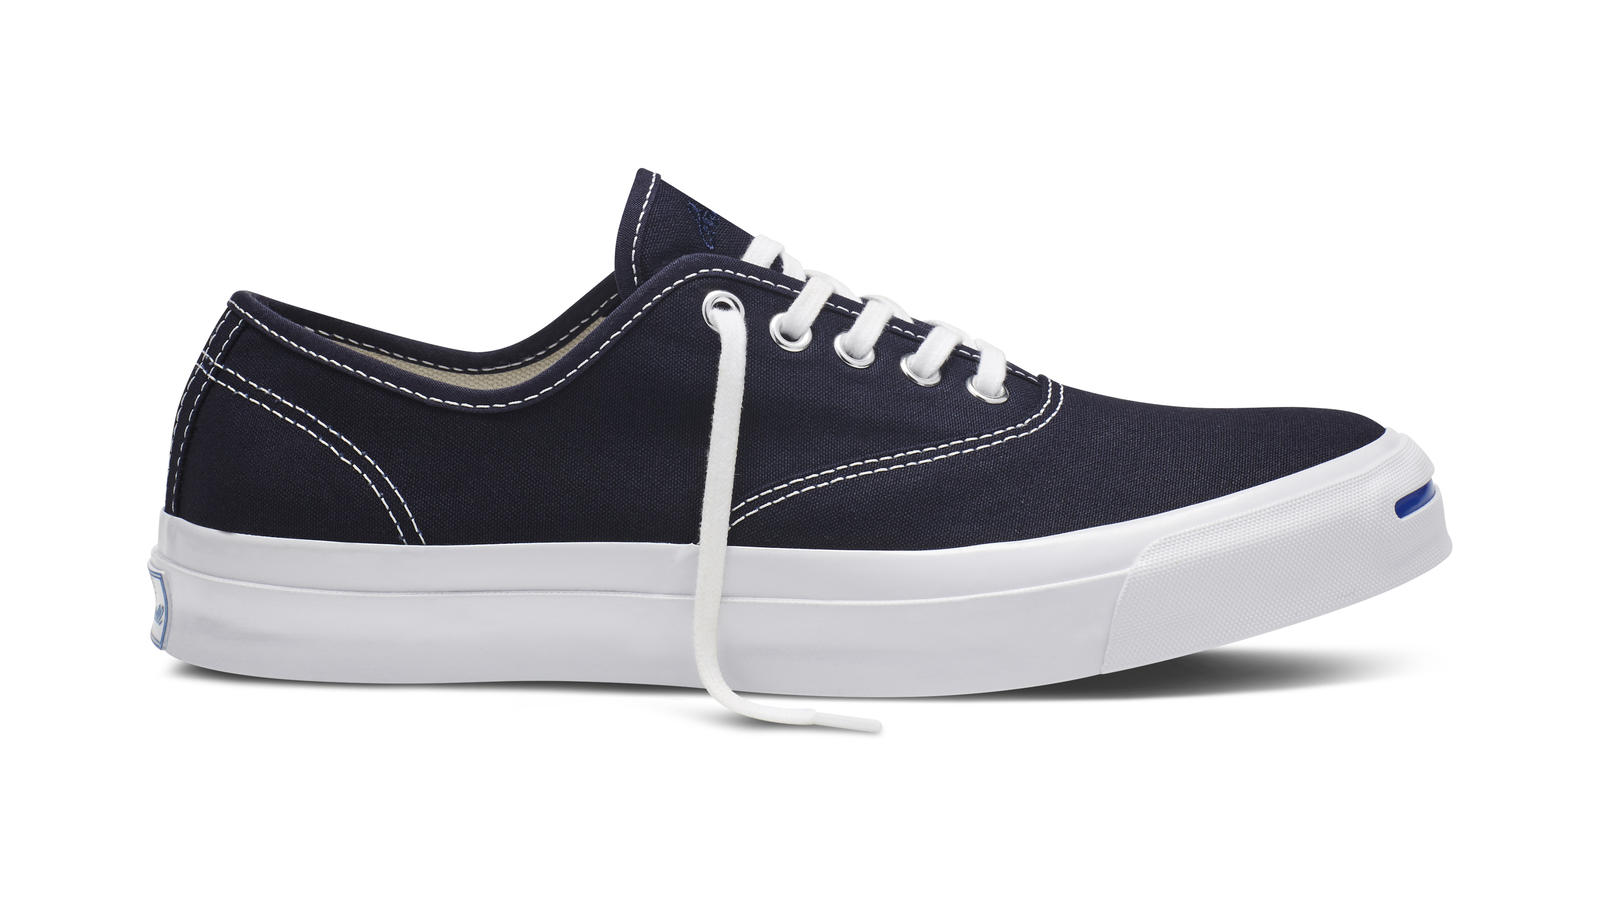 52a8be82a6fb CONVERSE JACK PURCELL CVO KEEPS IT CASUAL - Nike News